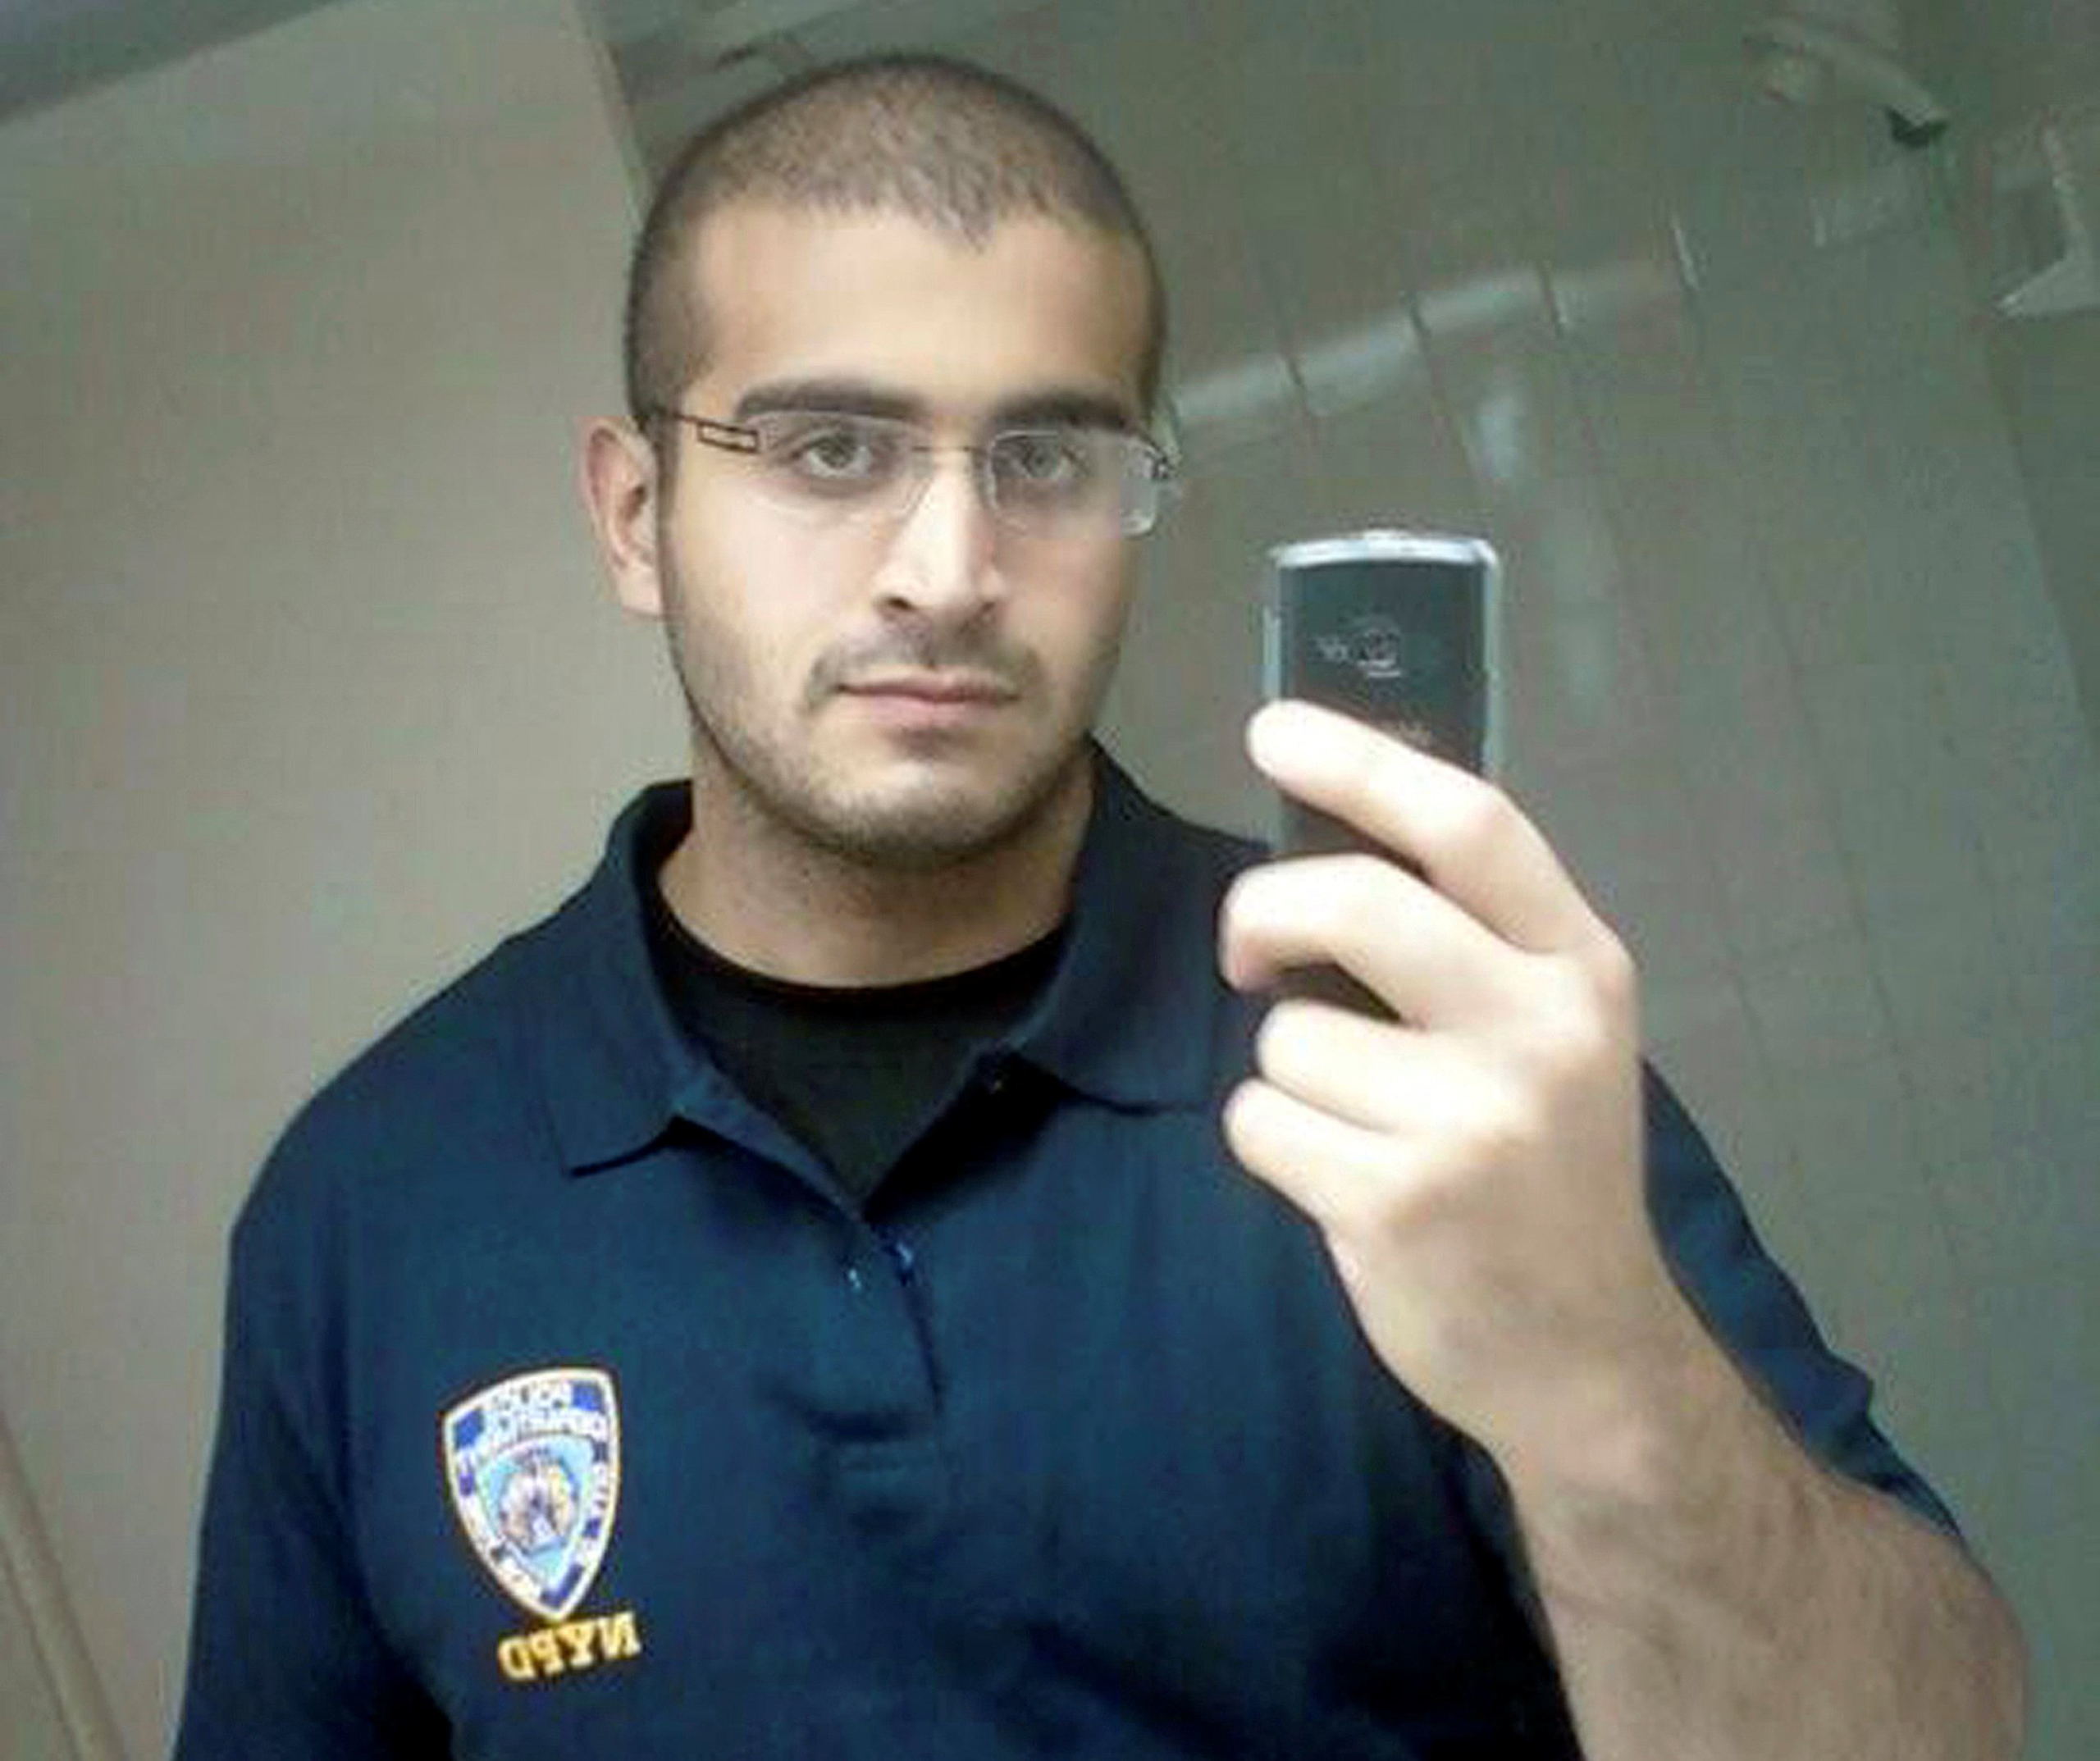 An undated photo from a social media account of Omar Mateen, who Orlando Police have identified as the suspect in the mass shooting at a gay nighclub in Orlando, on June 12, 2016.